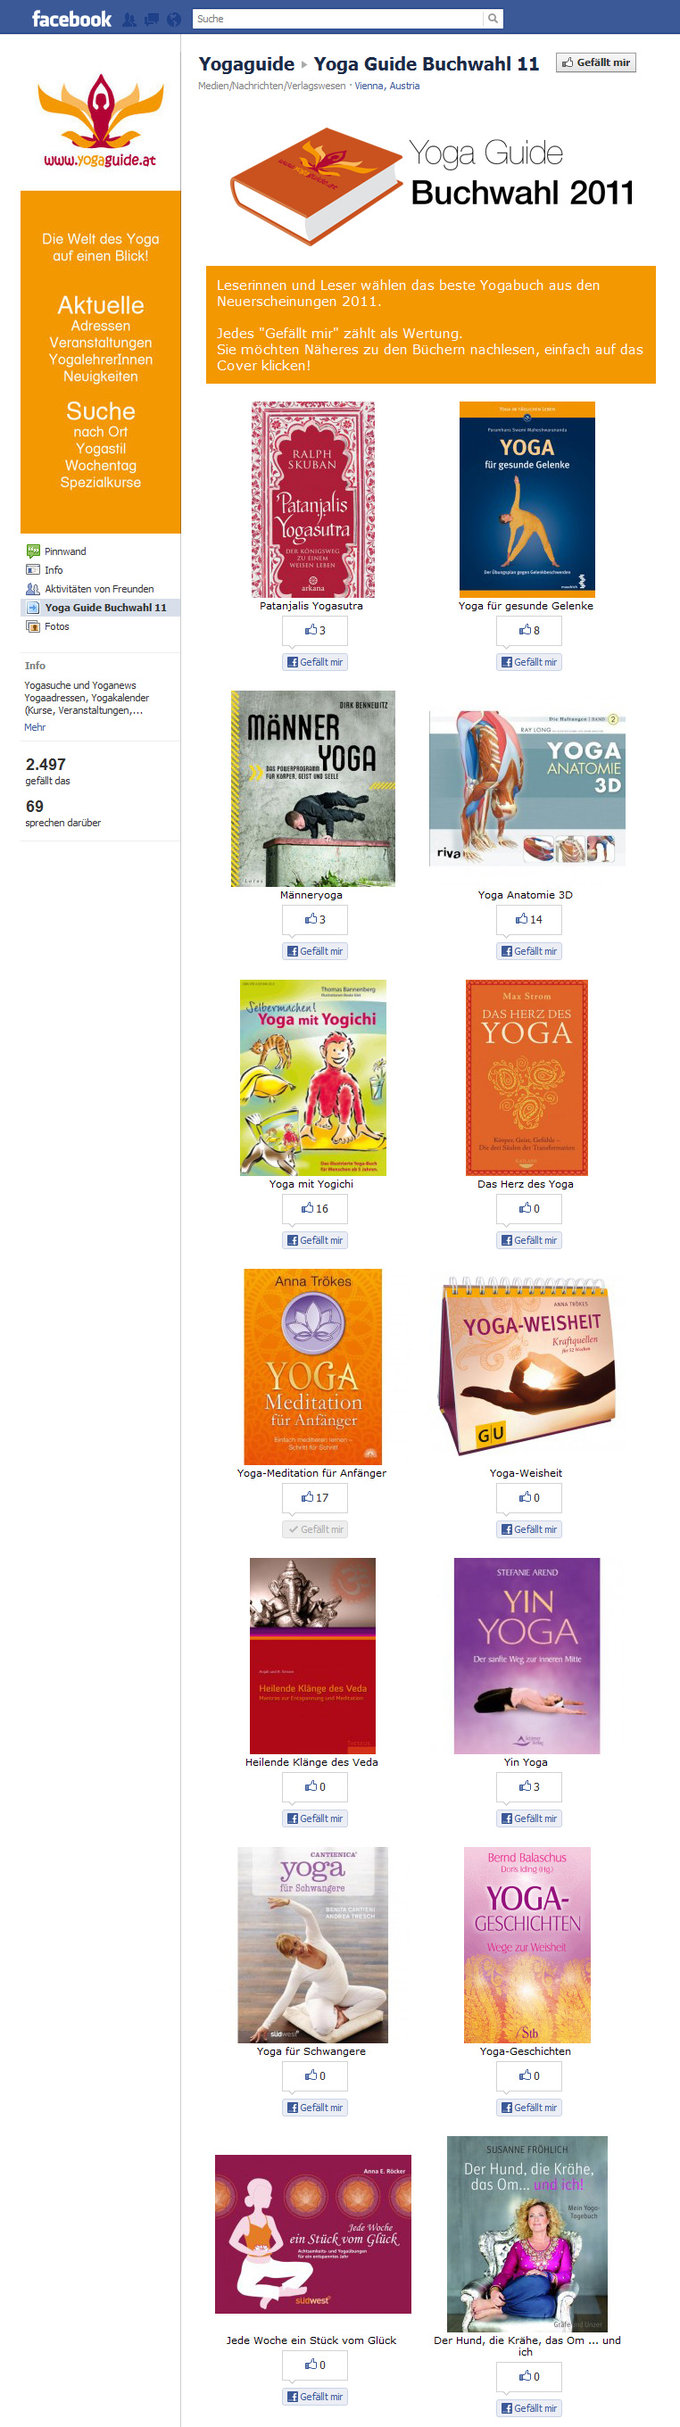 Yoga Guide Facebook Voting Tool Screenshot